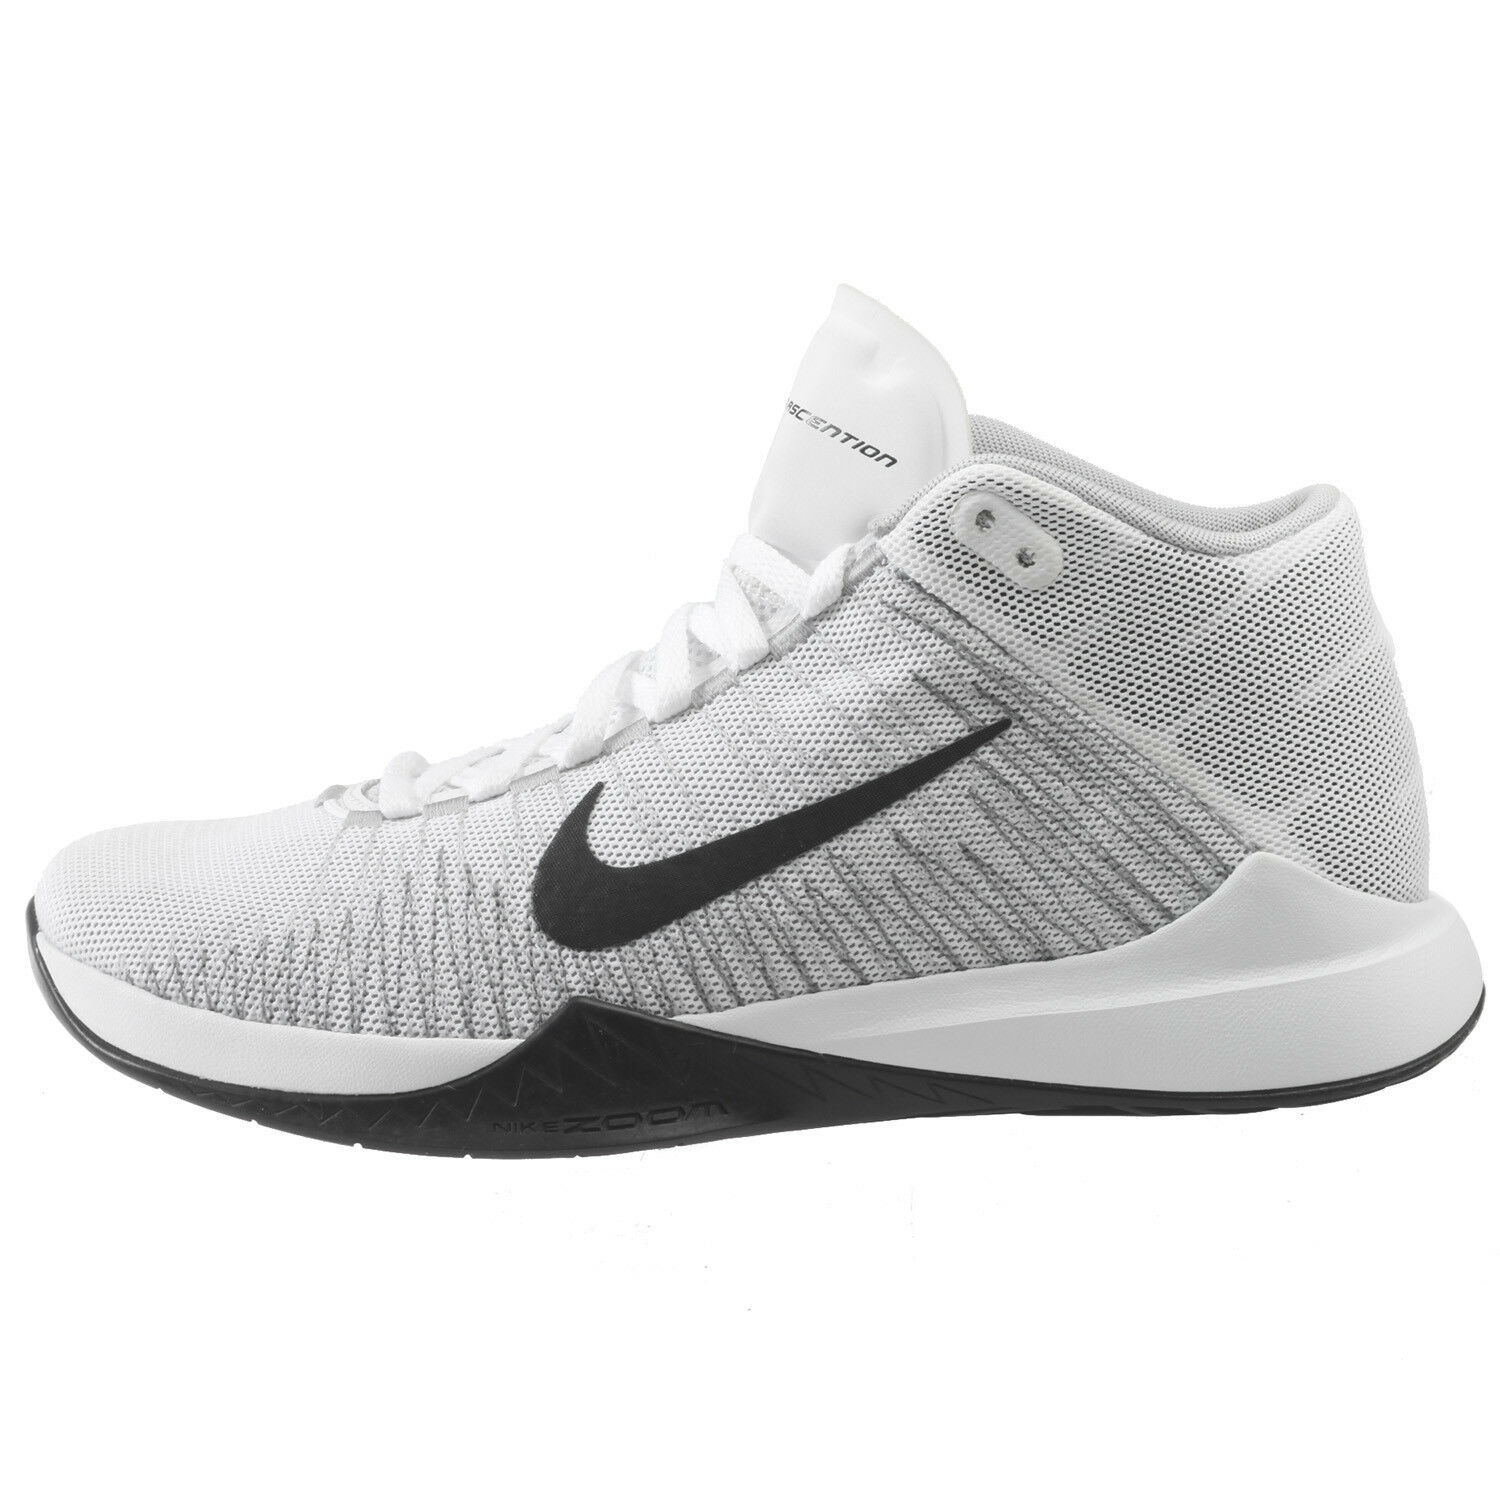 Nike Basketball Zoom Ascention Mens 832234-100 White Black Grey Basketball Nike Shoes Size 9 699a61